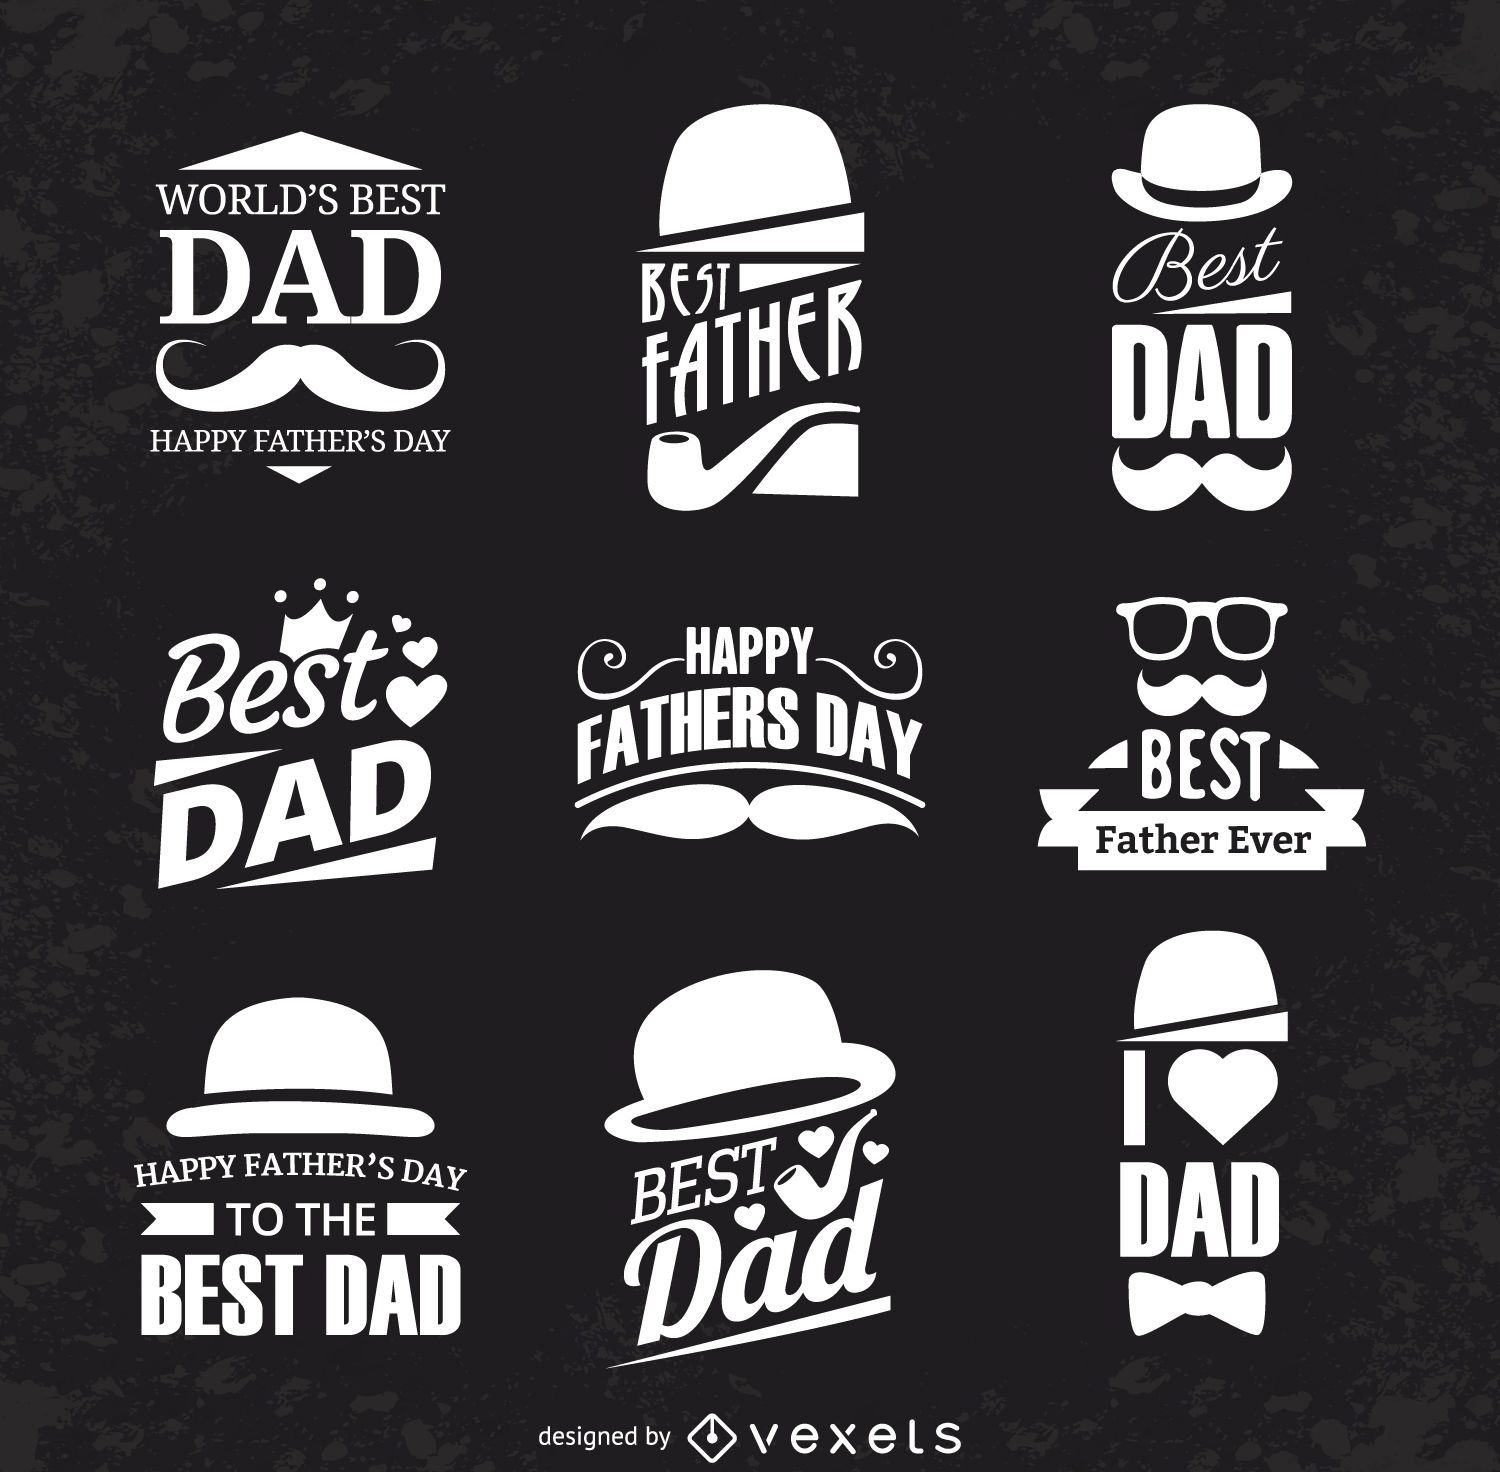 Fathers day card ideas cool